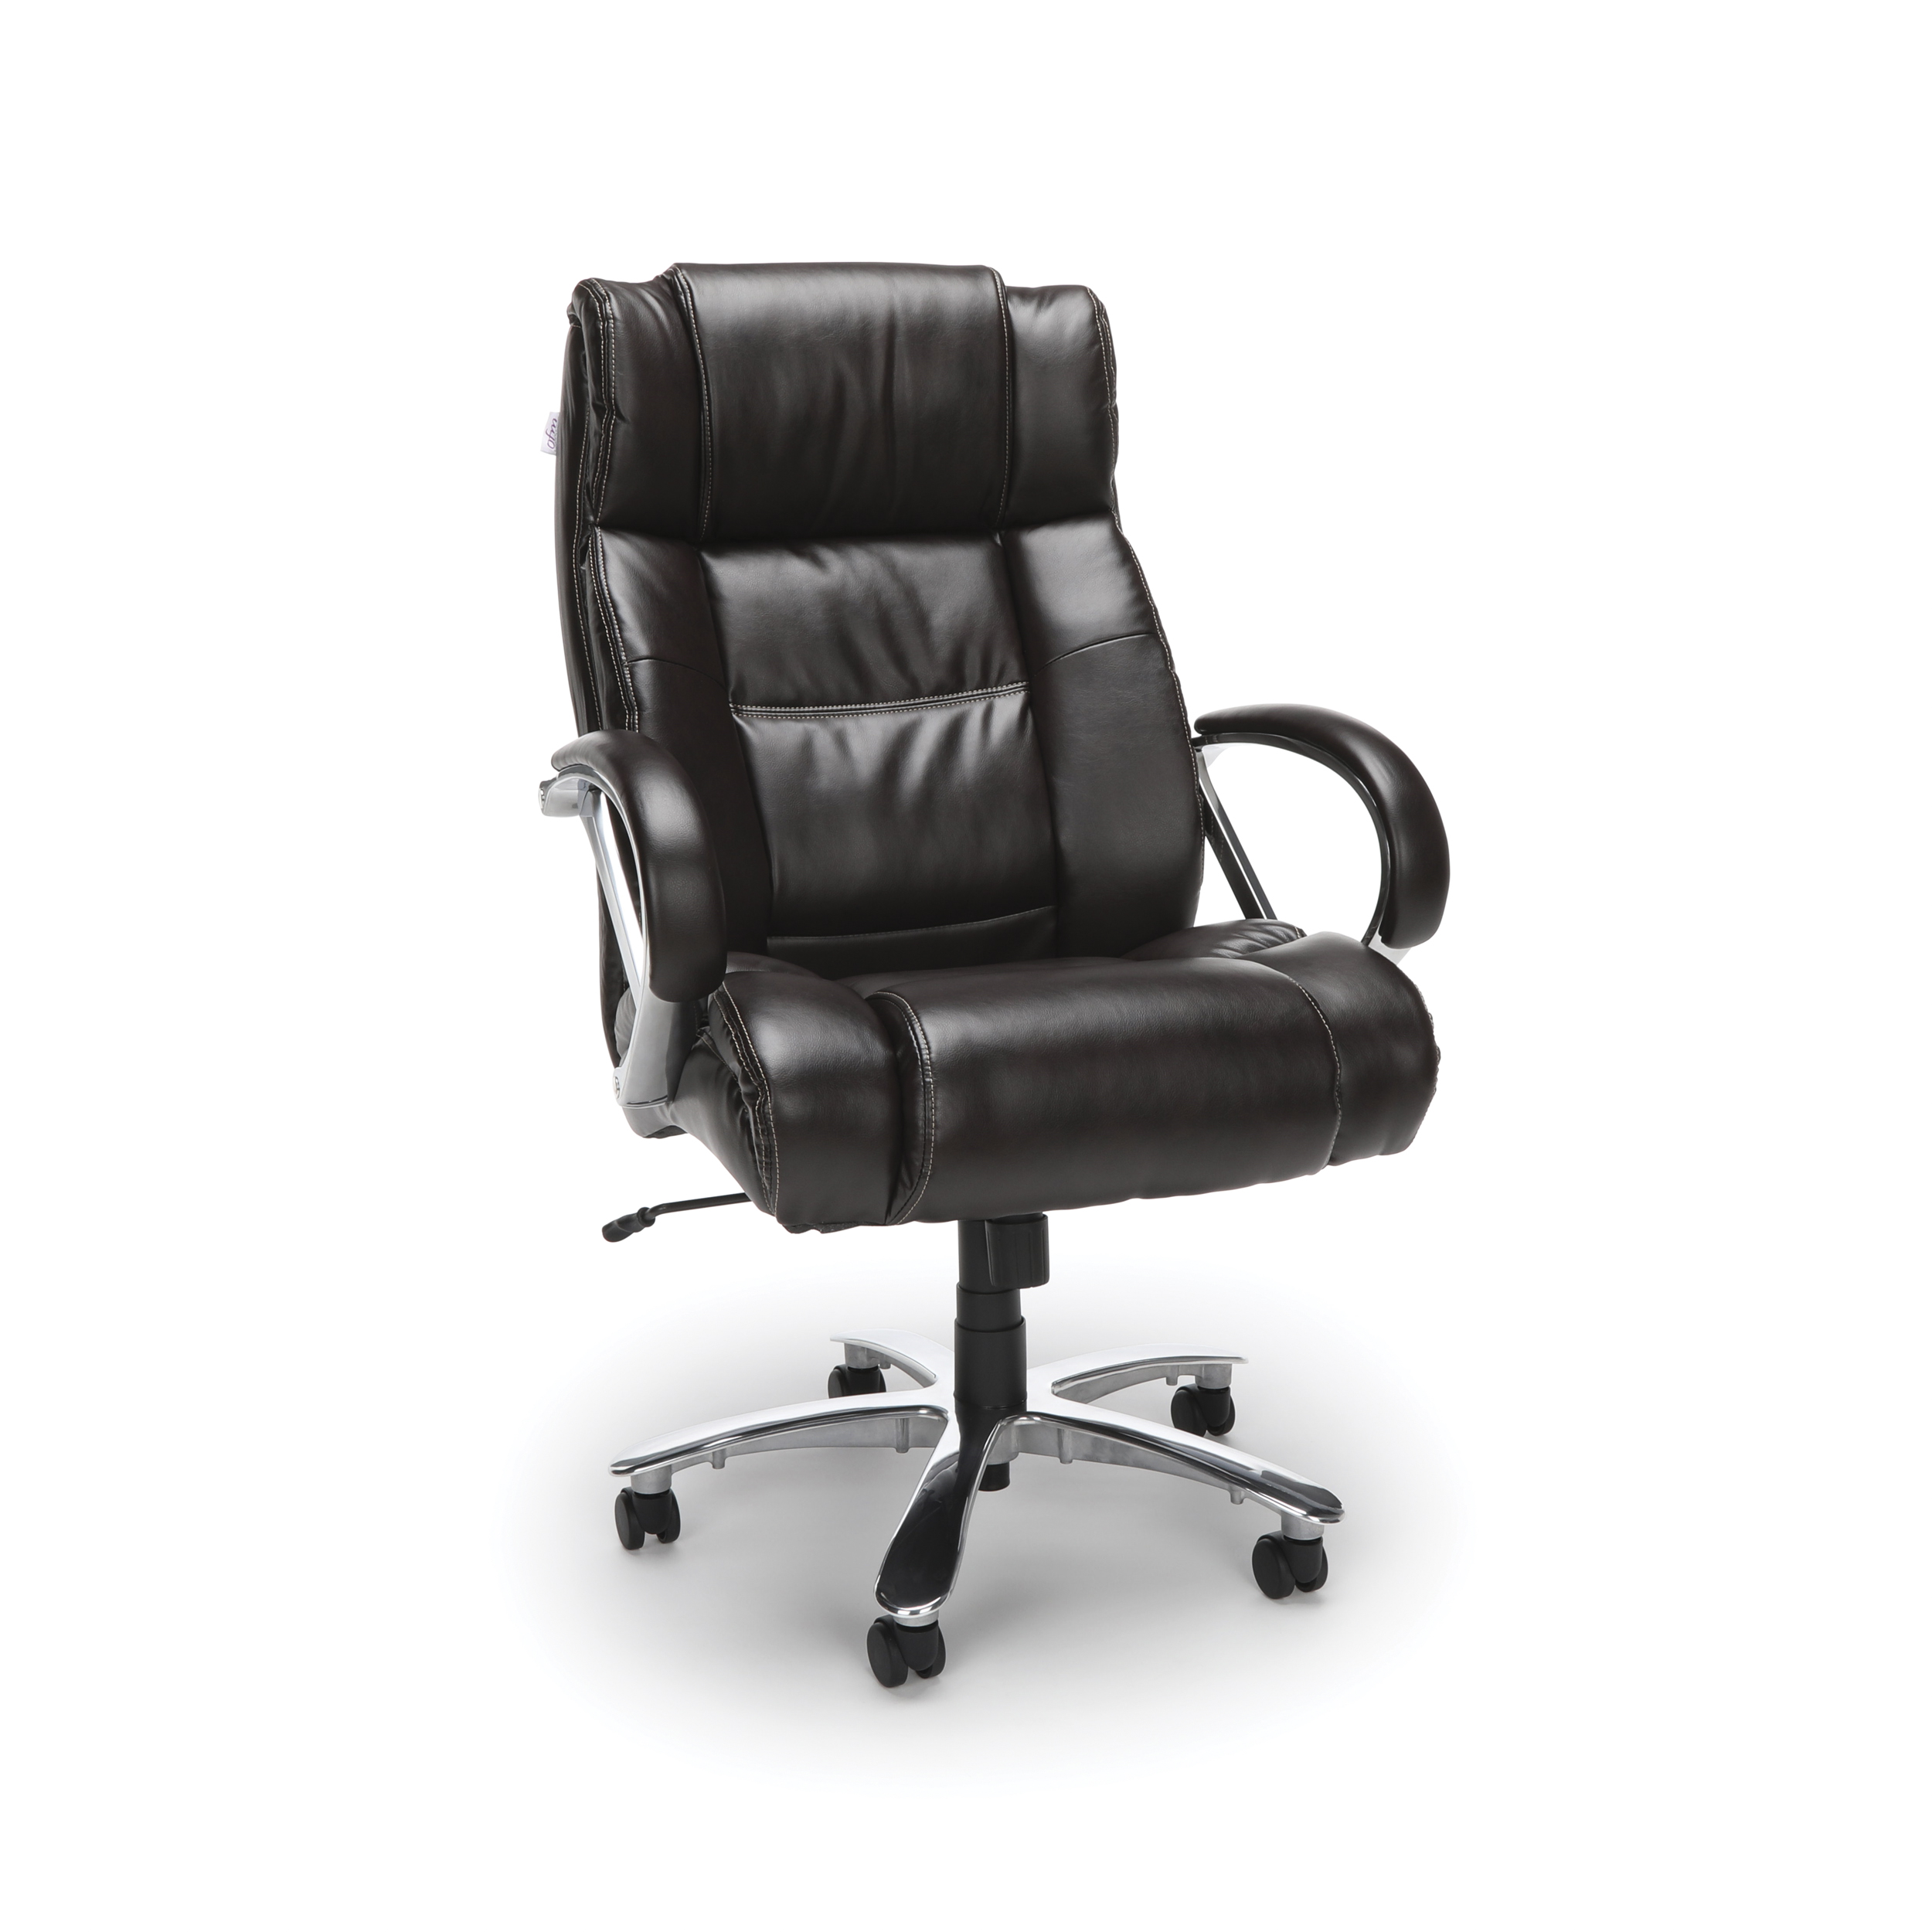 Ofm Avenger Series Model 810 Lx Leather High Back Big And Tall Executive Office Chair Black Com